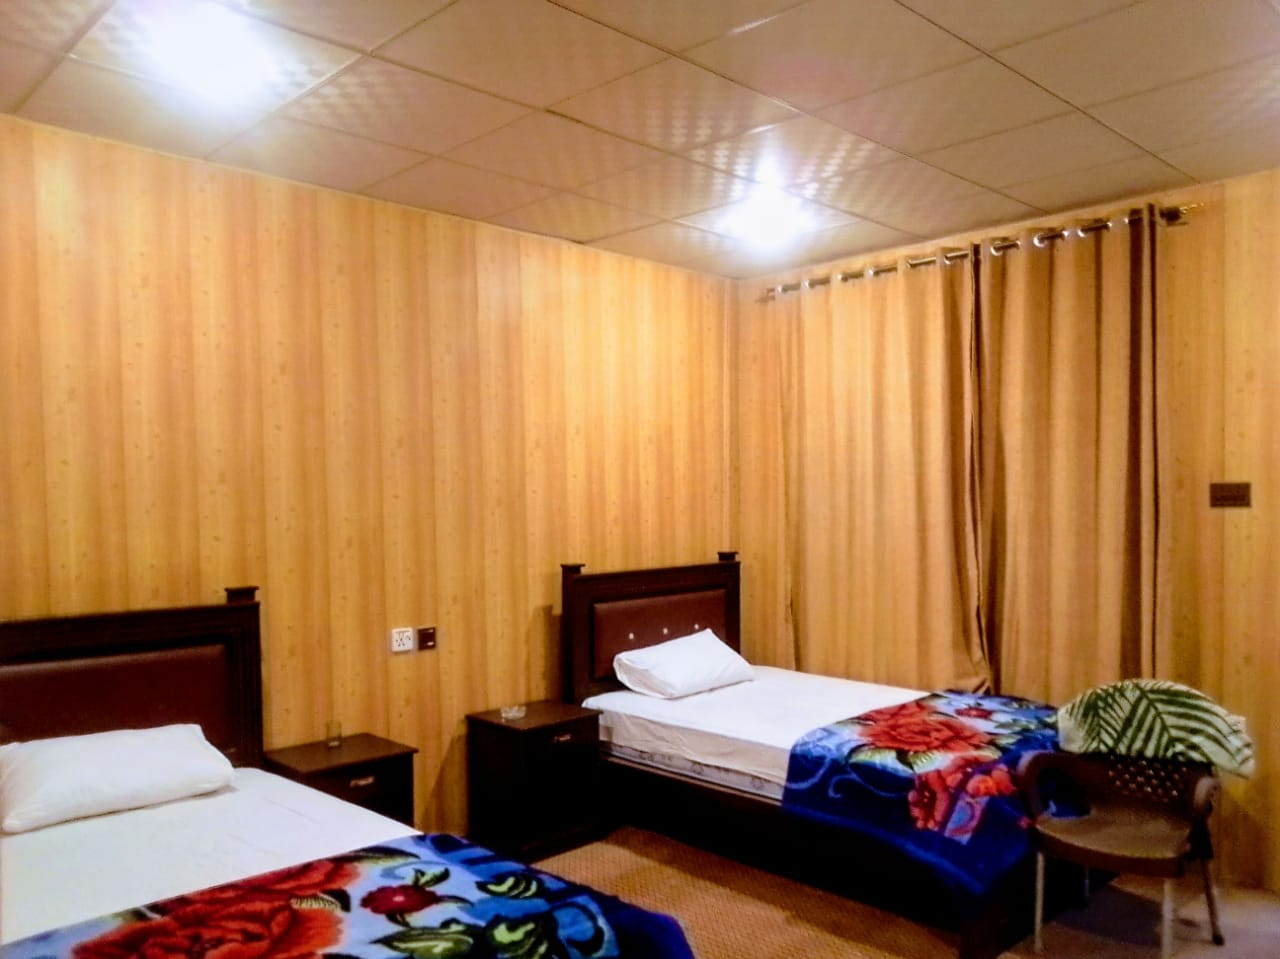 hotel room in Passu with two beds